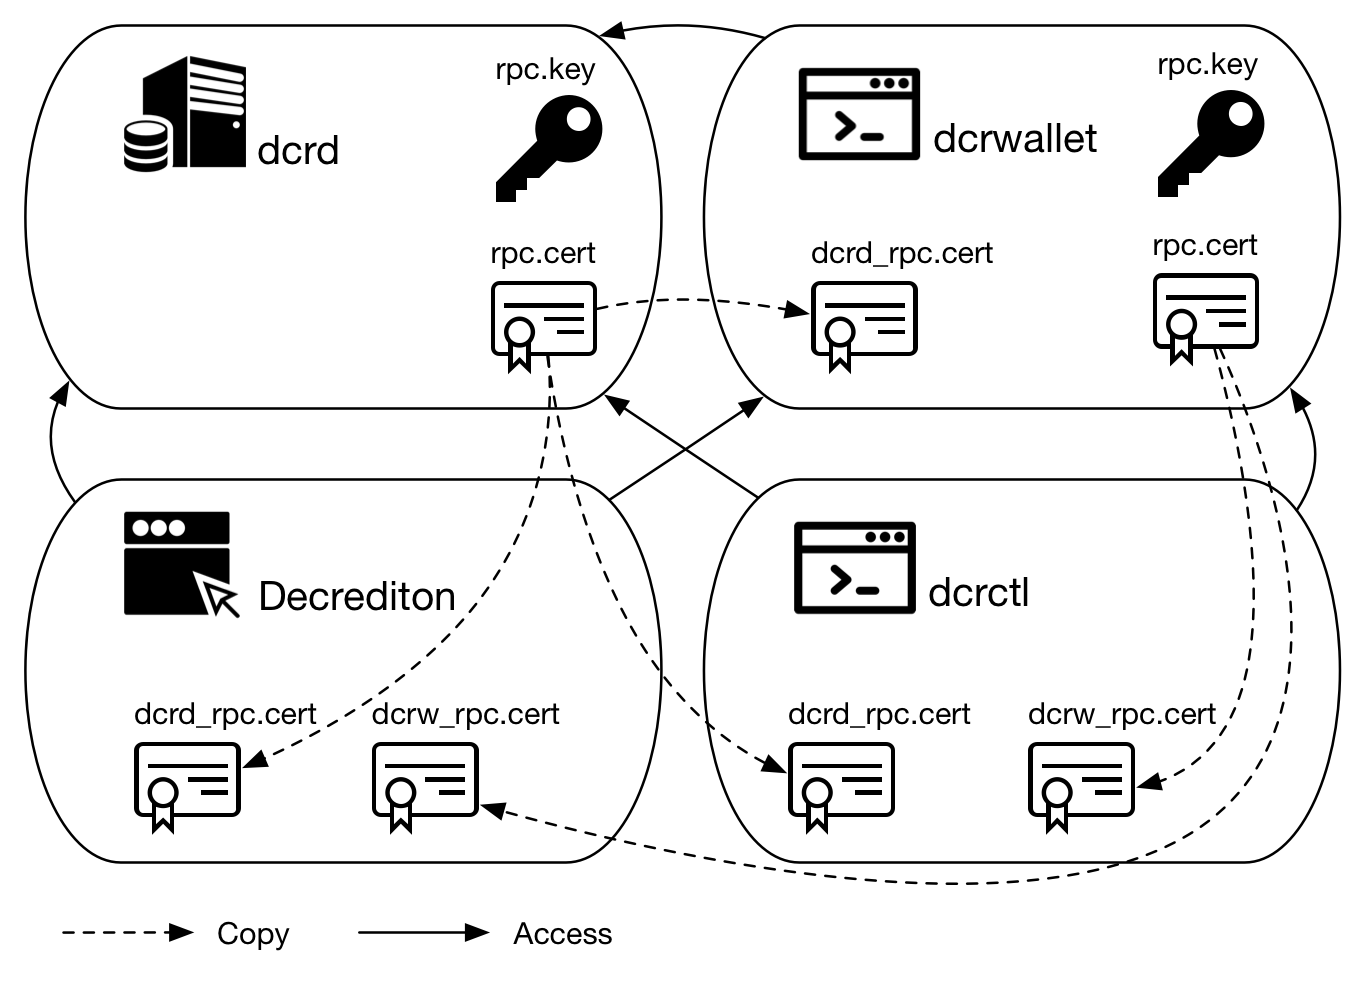 Figure 2 - Network connection depends on validating the certificate